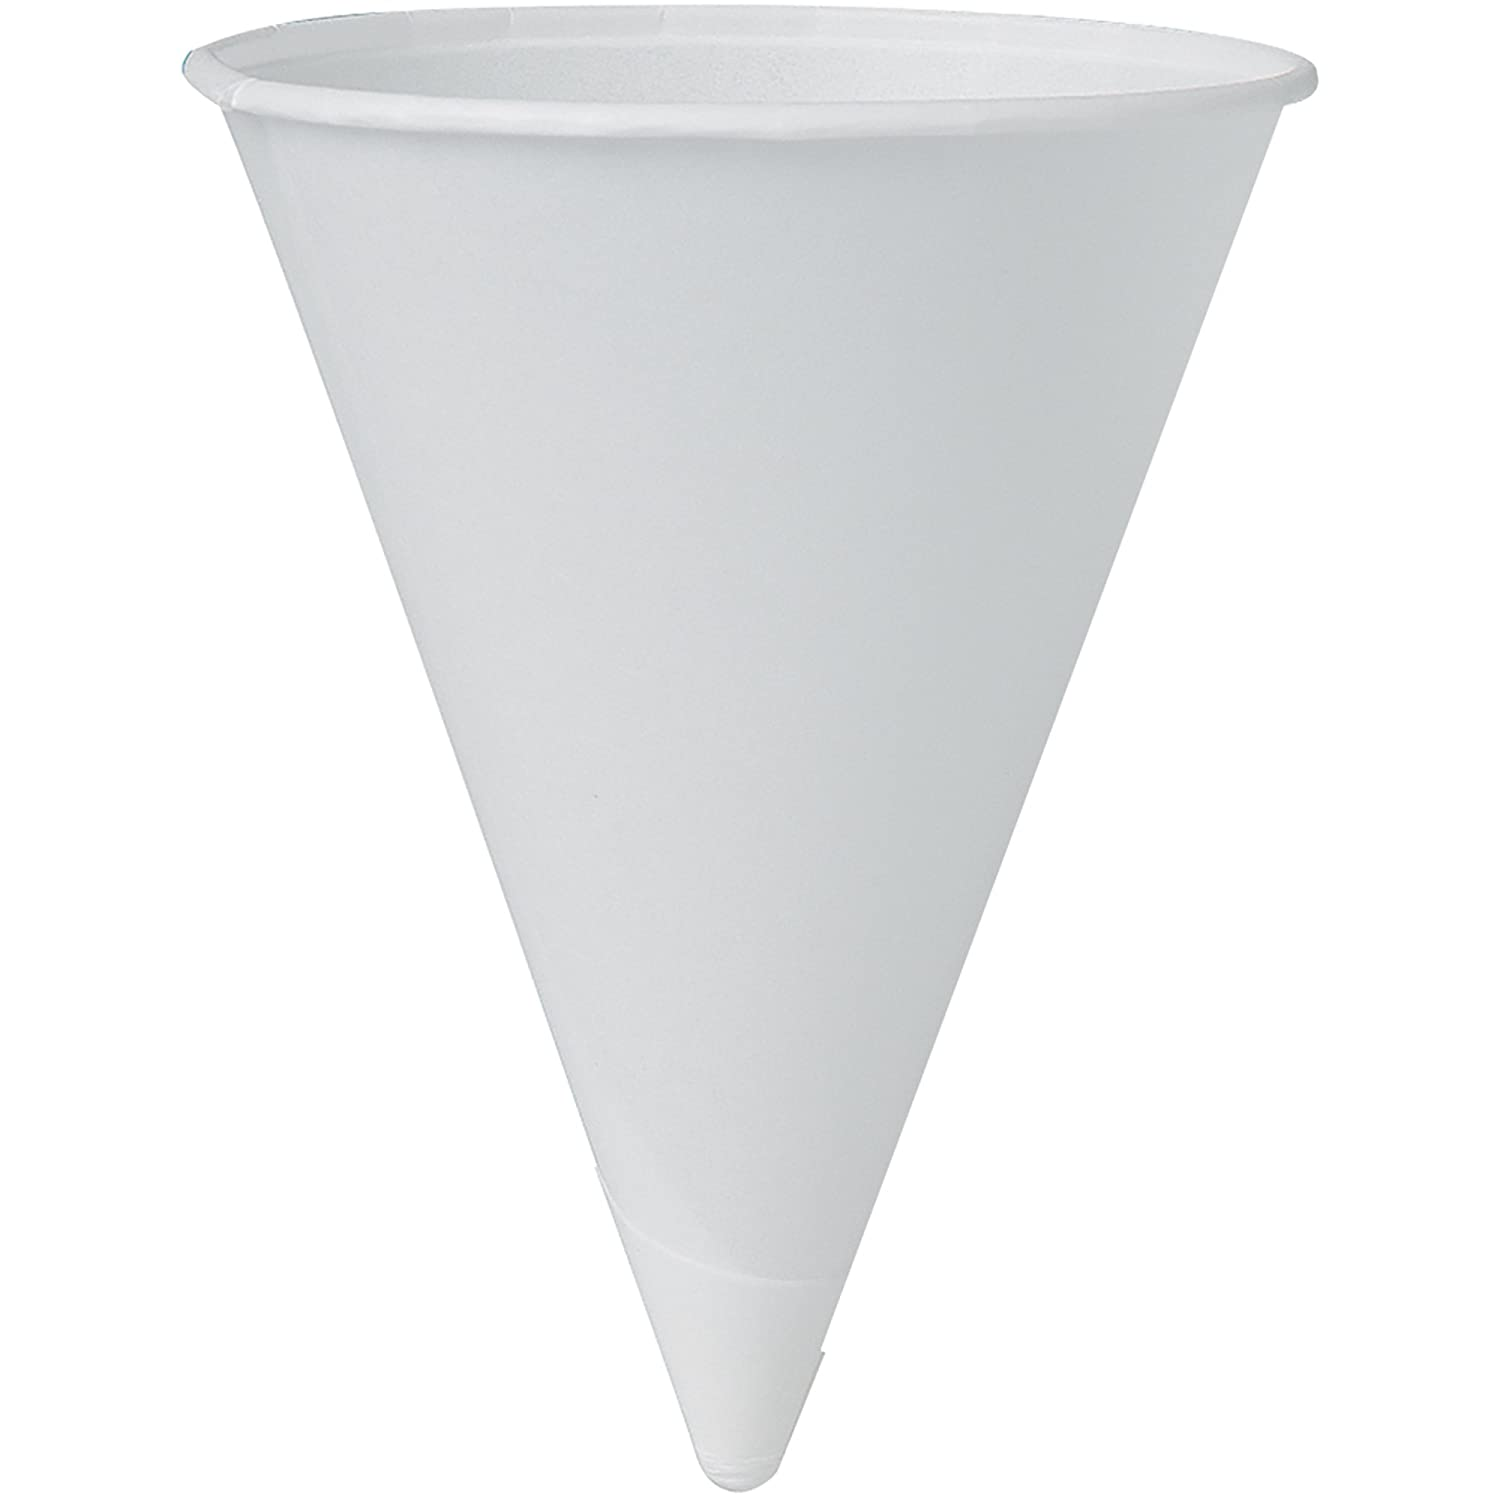 SOLO 4R-2050 Bare Eco-Forward Treated Paper Cone Water Cup, Rolled Rim, 4 oz. Capacity, 2.7 x 3.3, White (Case of 5,000) 2.7 x 3.3